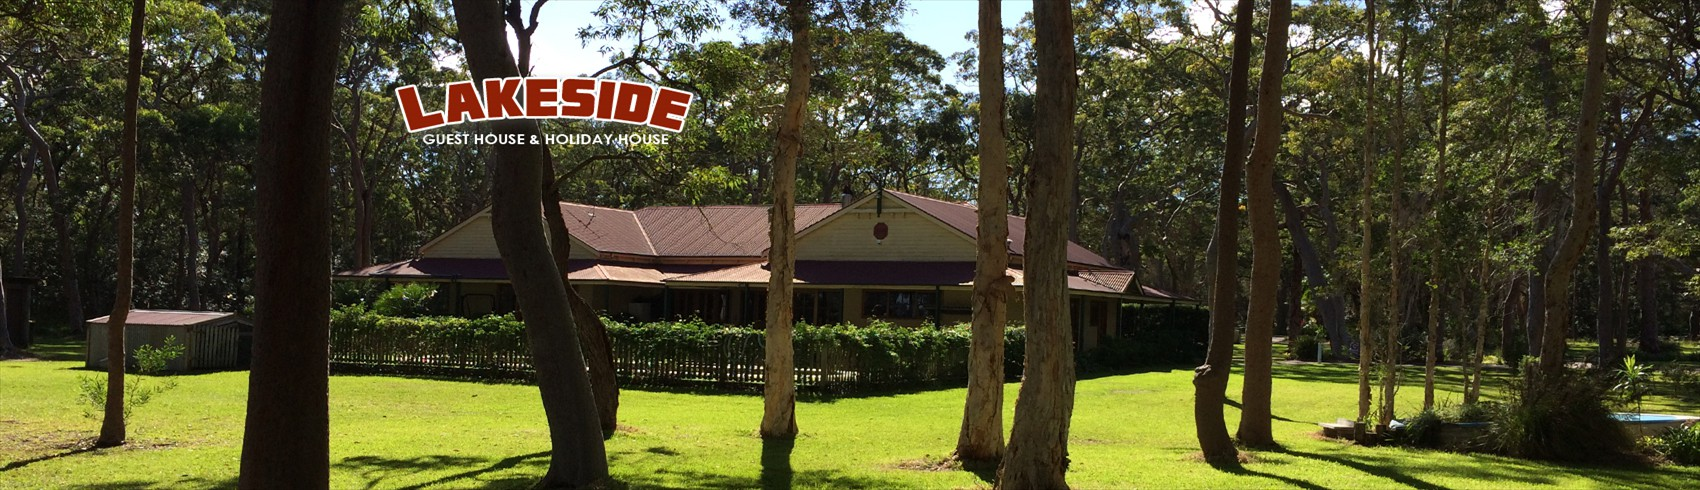 The Lakeside Holiday House - Lake Macquarie